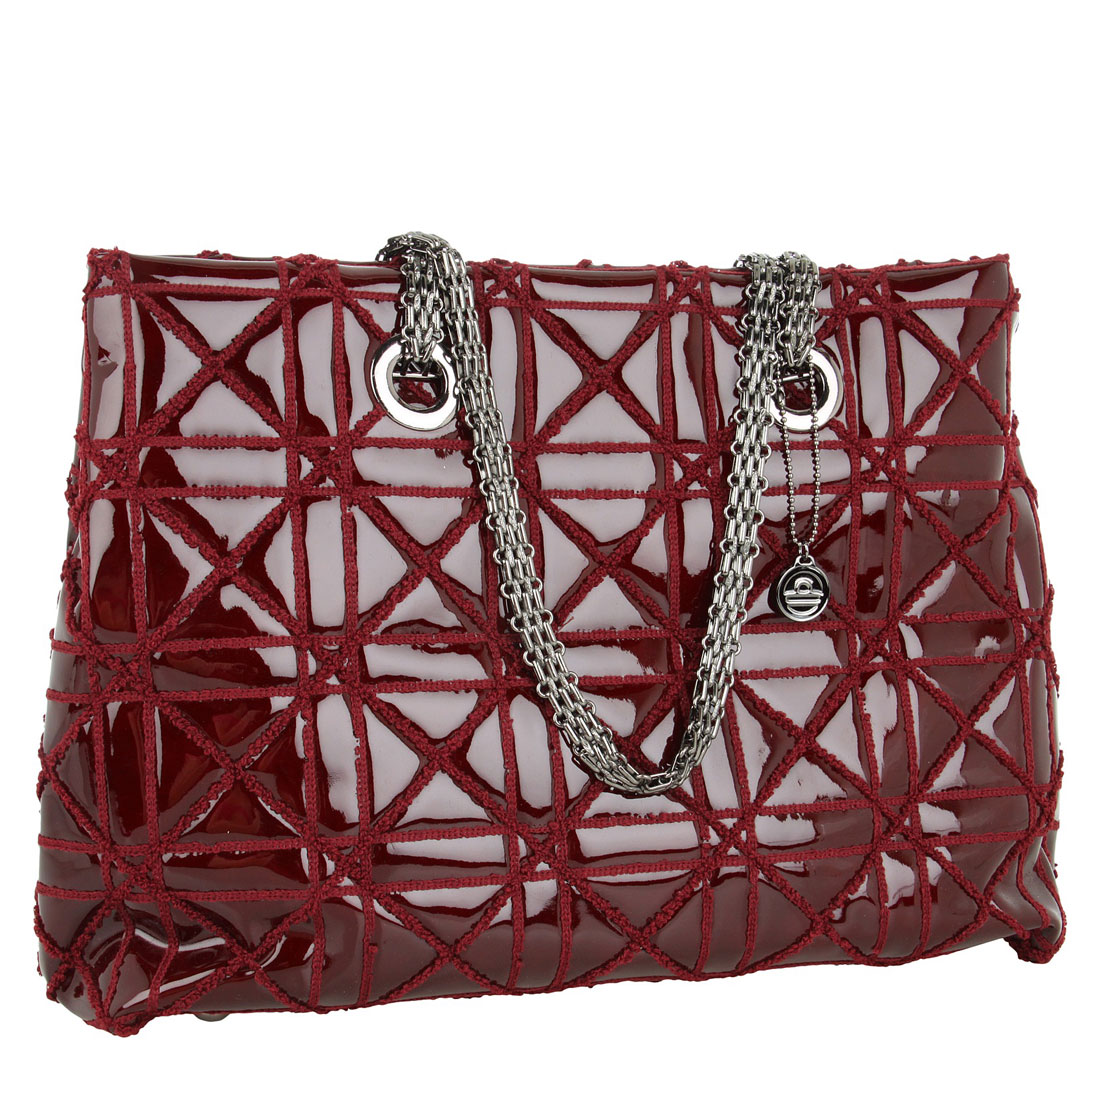 Big Buddha Perry Tote - Burgundy